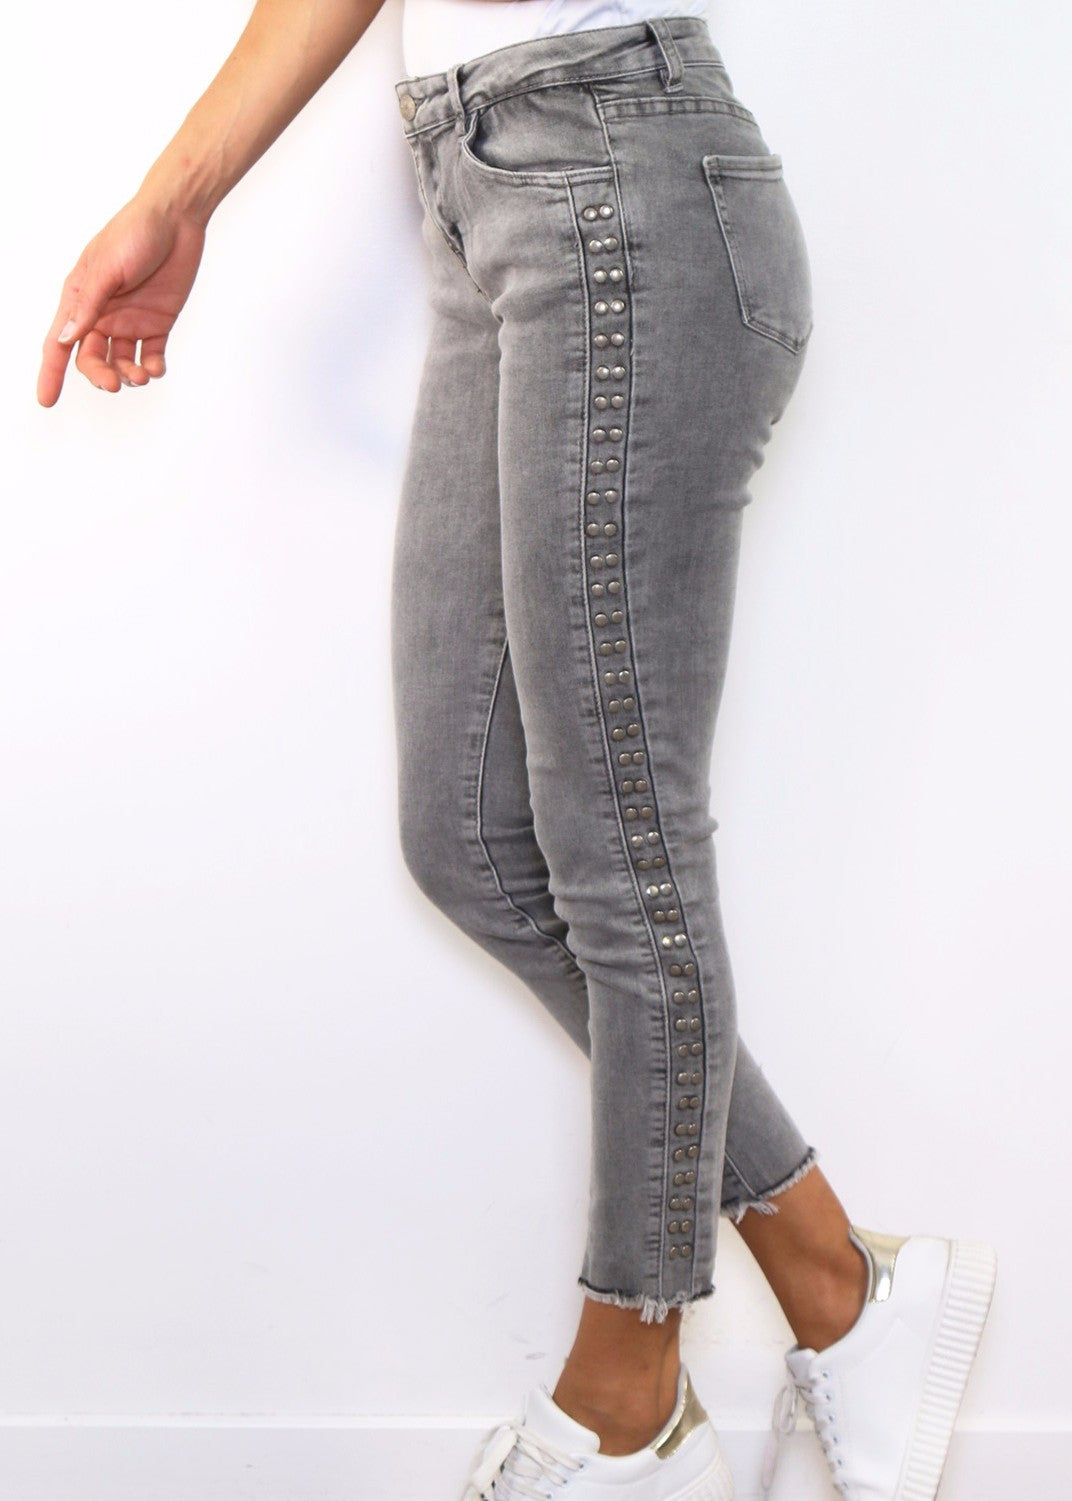 MARIAN - Studded Jeans - Grey